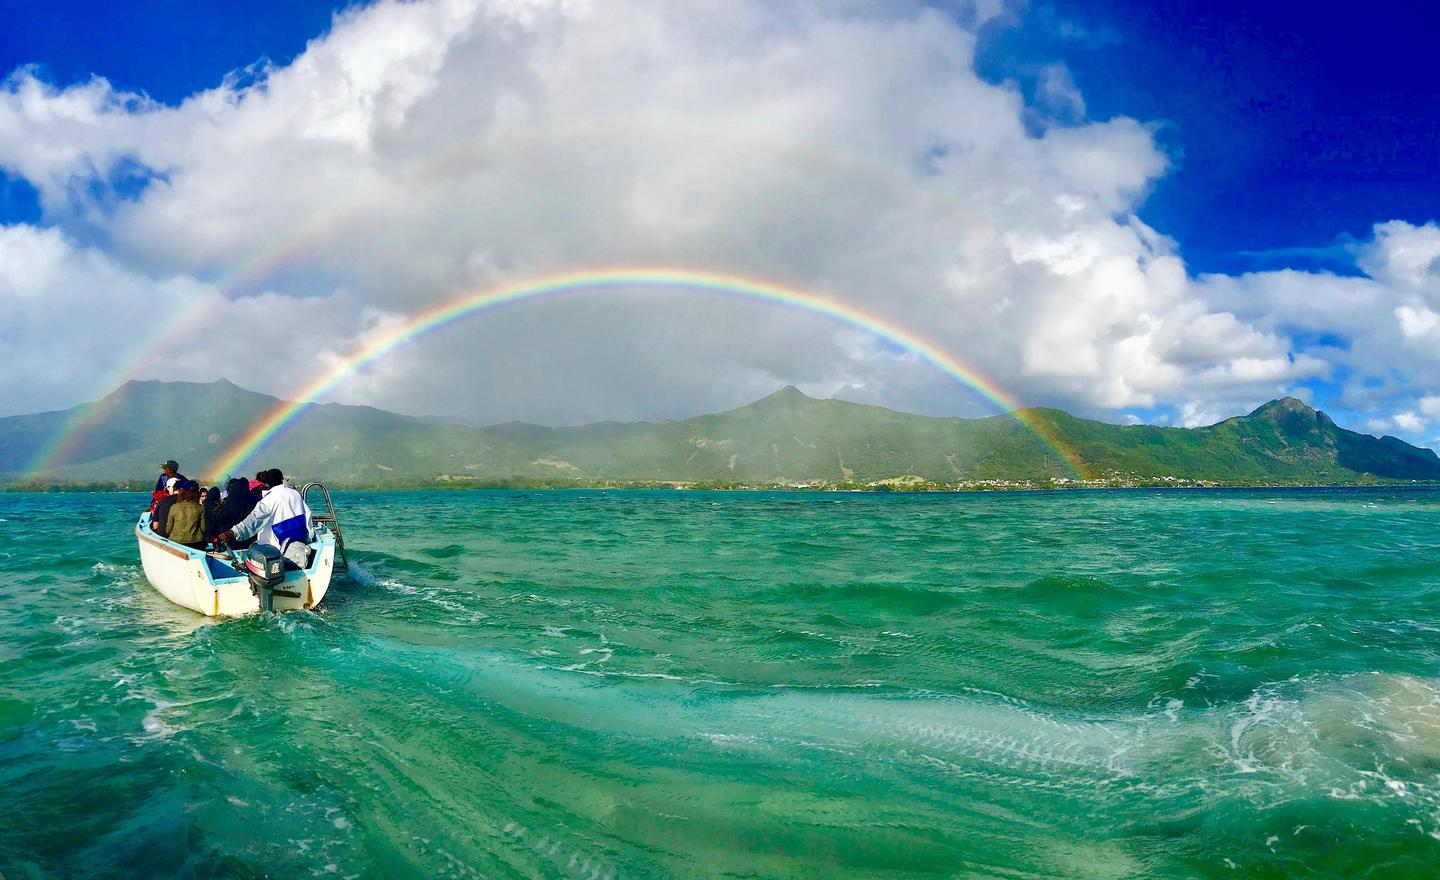 A boat in the ocean with a rainbow in the background